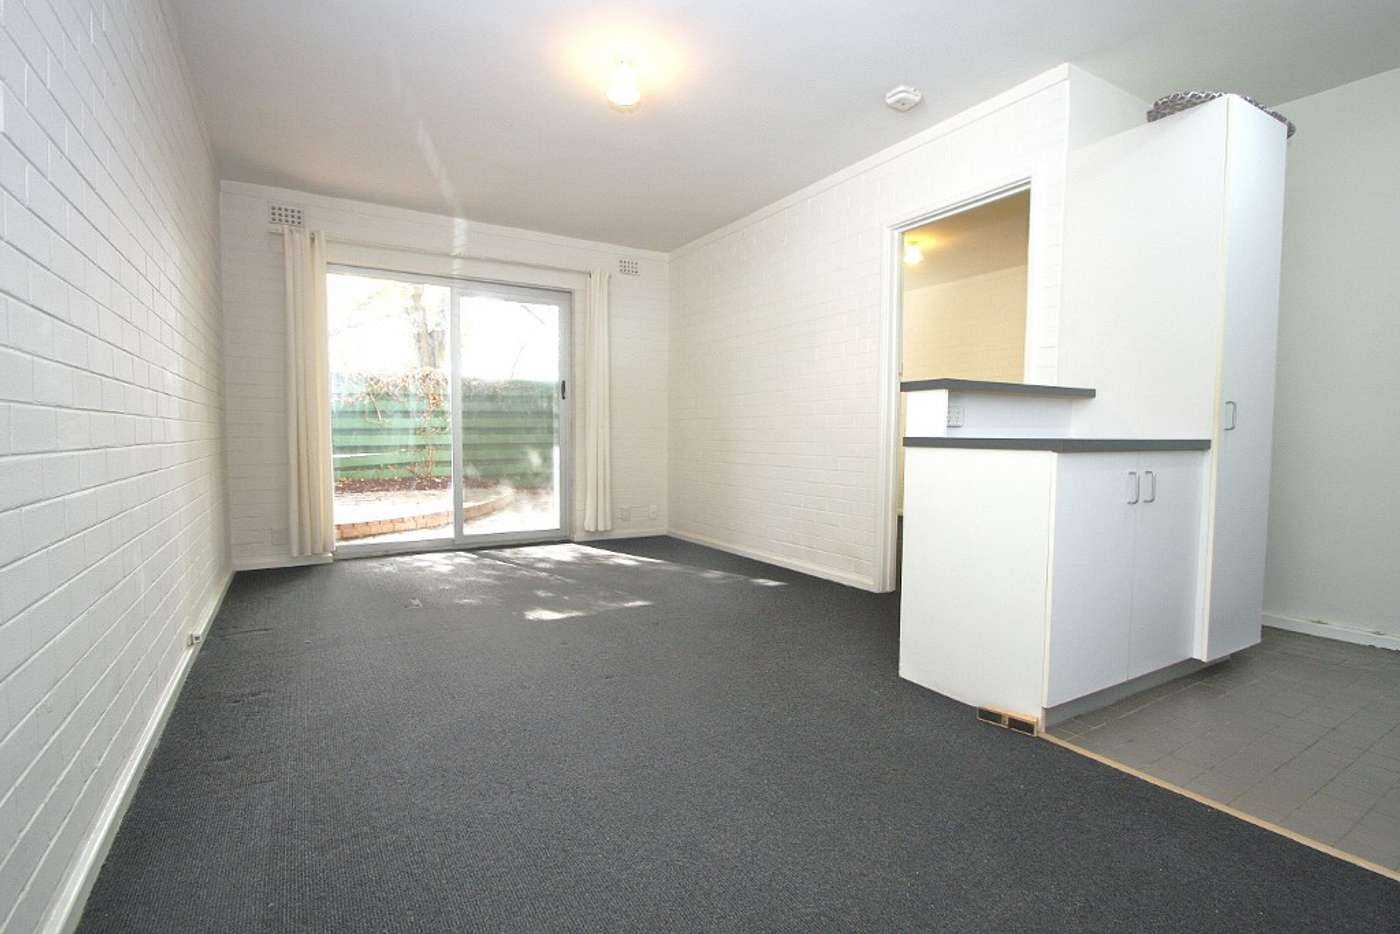 Main view of Homely apartment listing, 12/11 Stirling Road, Claremont WA 6010